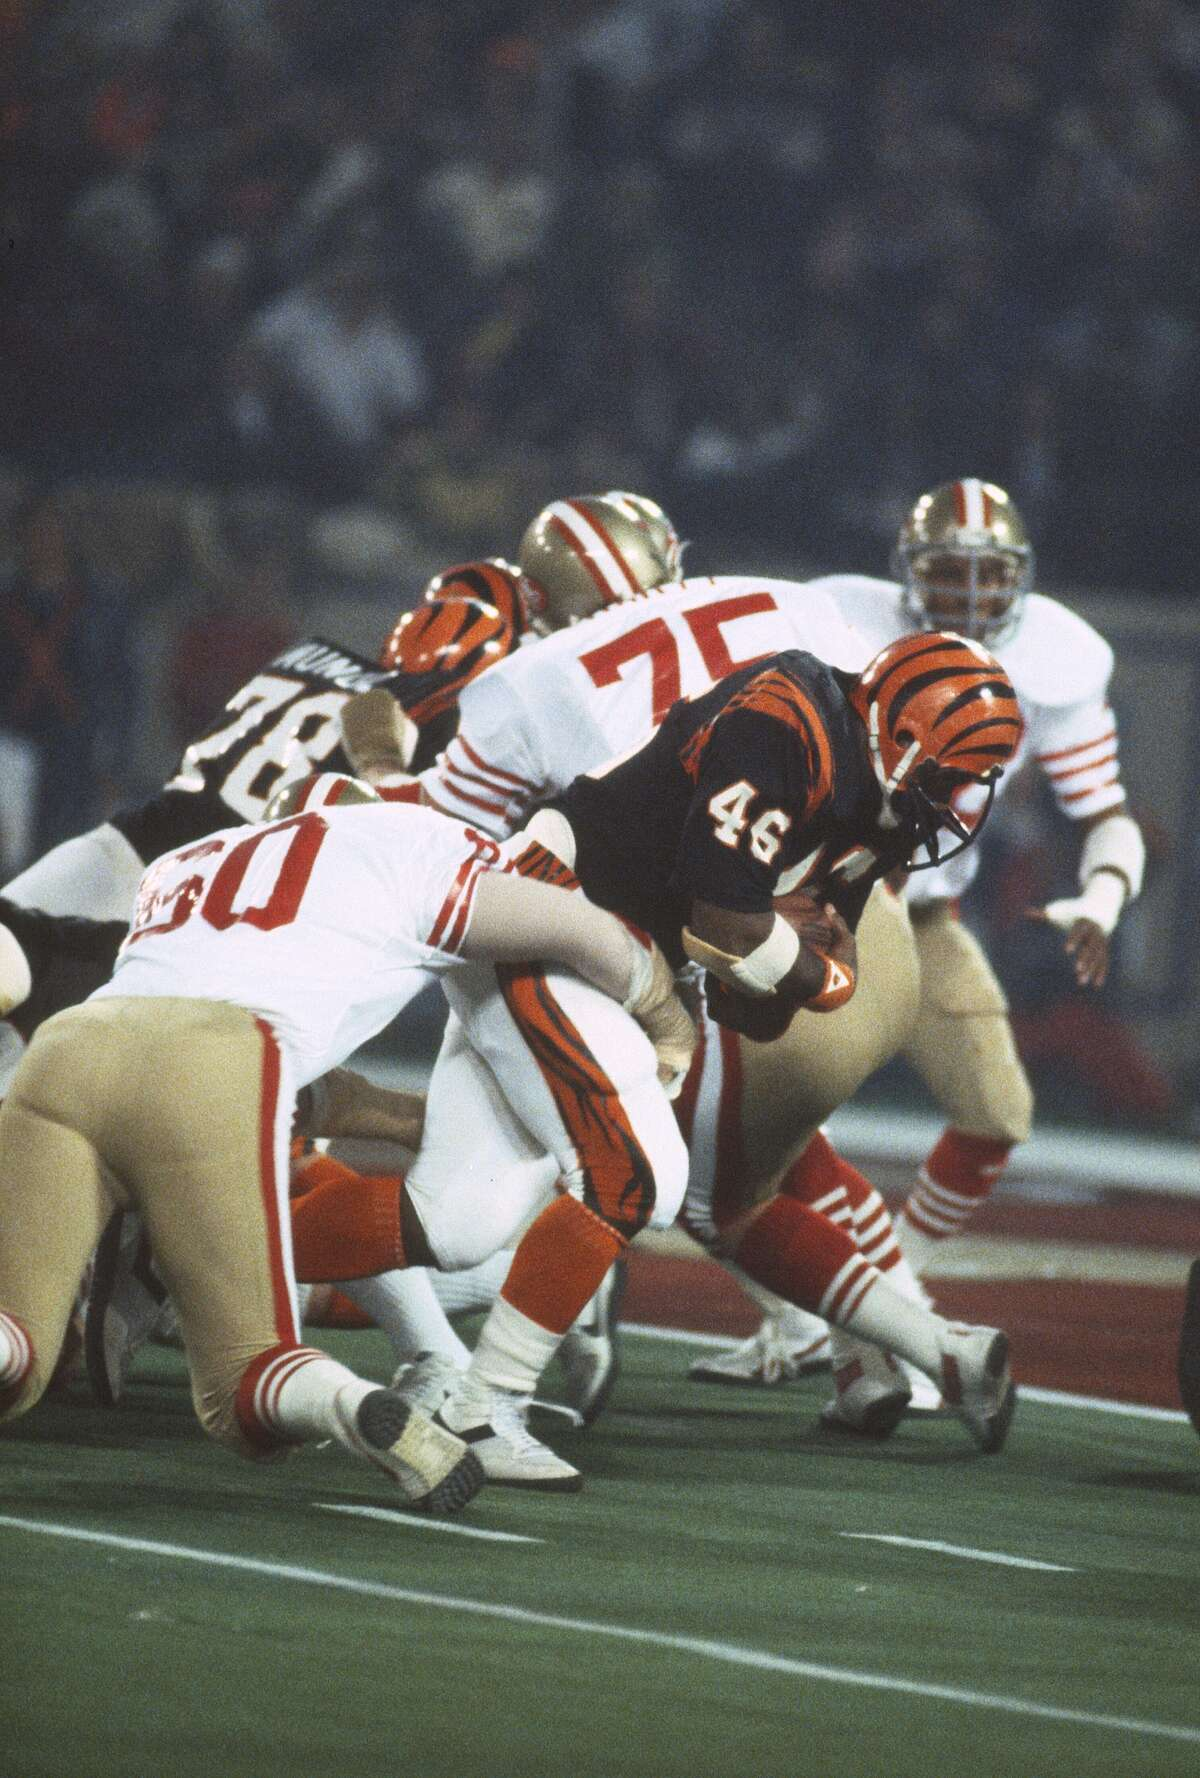 29. 49ers' goal-line stand: San Francisco changed the course of Super Bowl XVI late in the third quarter when Cincinnati was driving to try and climb back in the game. The 49ers turned away the Bengals four times inside their 3-yard line, including a fourth-down stop of bullish fullback Pete Johnson by Ronnie Lott, Dan Bunz and Jack